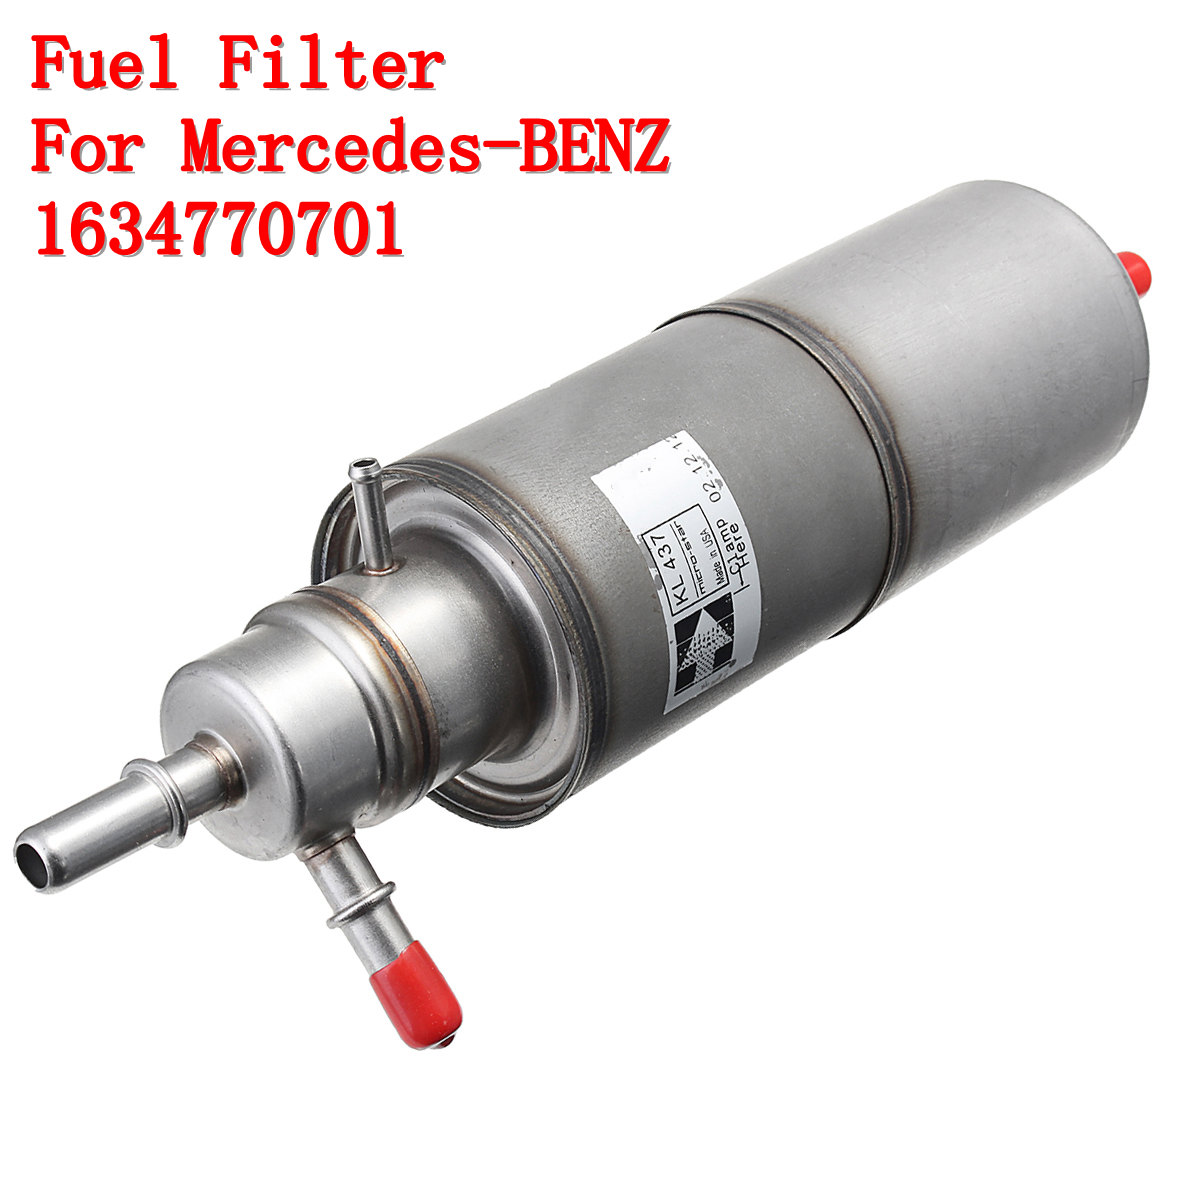 Car Oil Fuel Filter Pressure Regulator For MERCEDES BENZ ML55 for AMG ML320  ML430 1634770701-in Fuel Filters from Automobiles & Motorcycles on ...